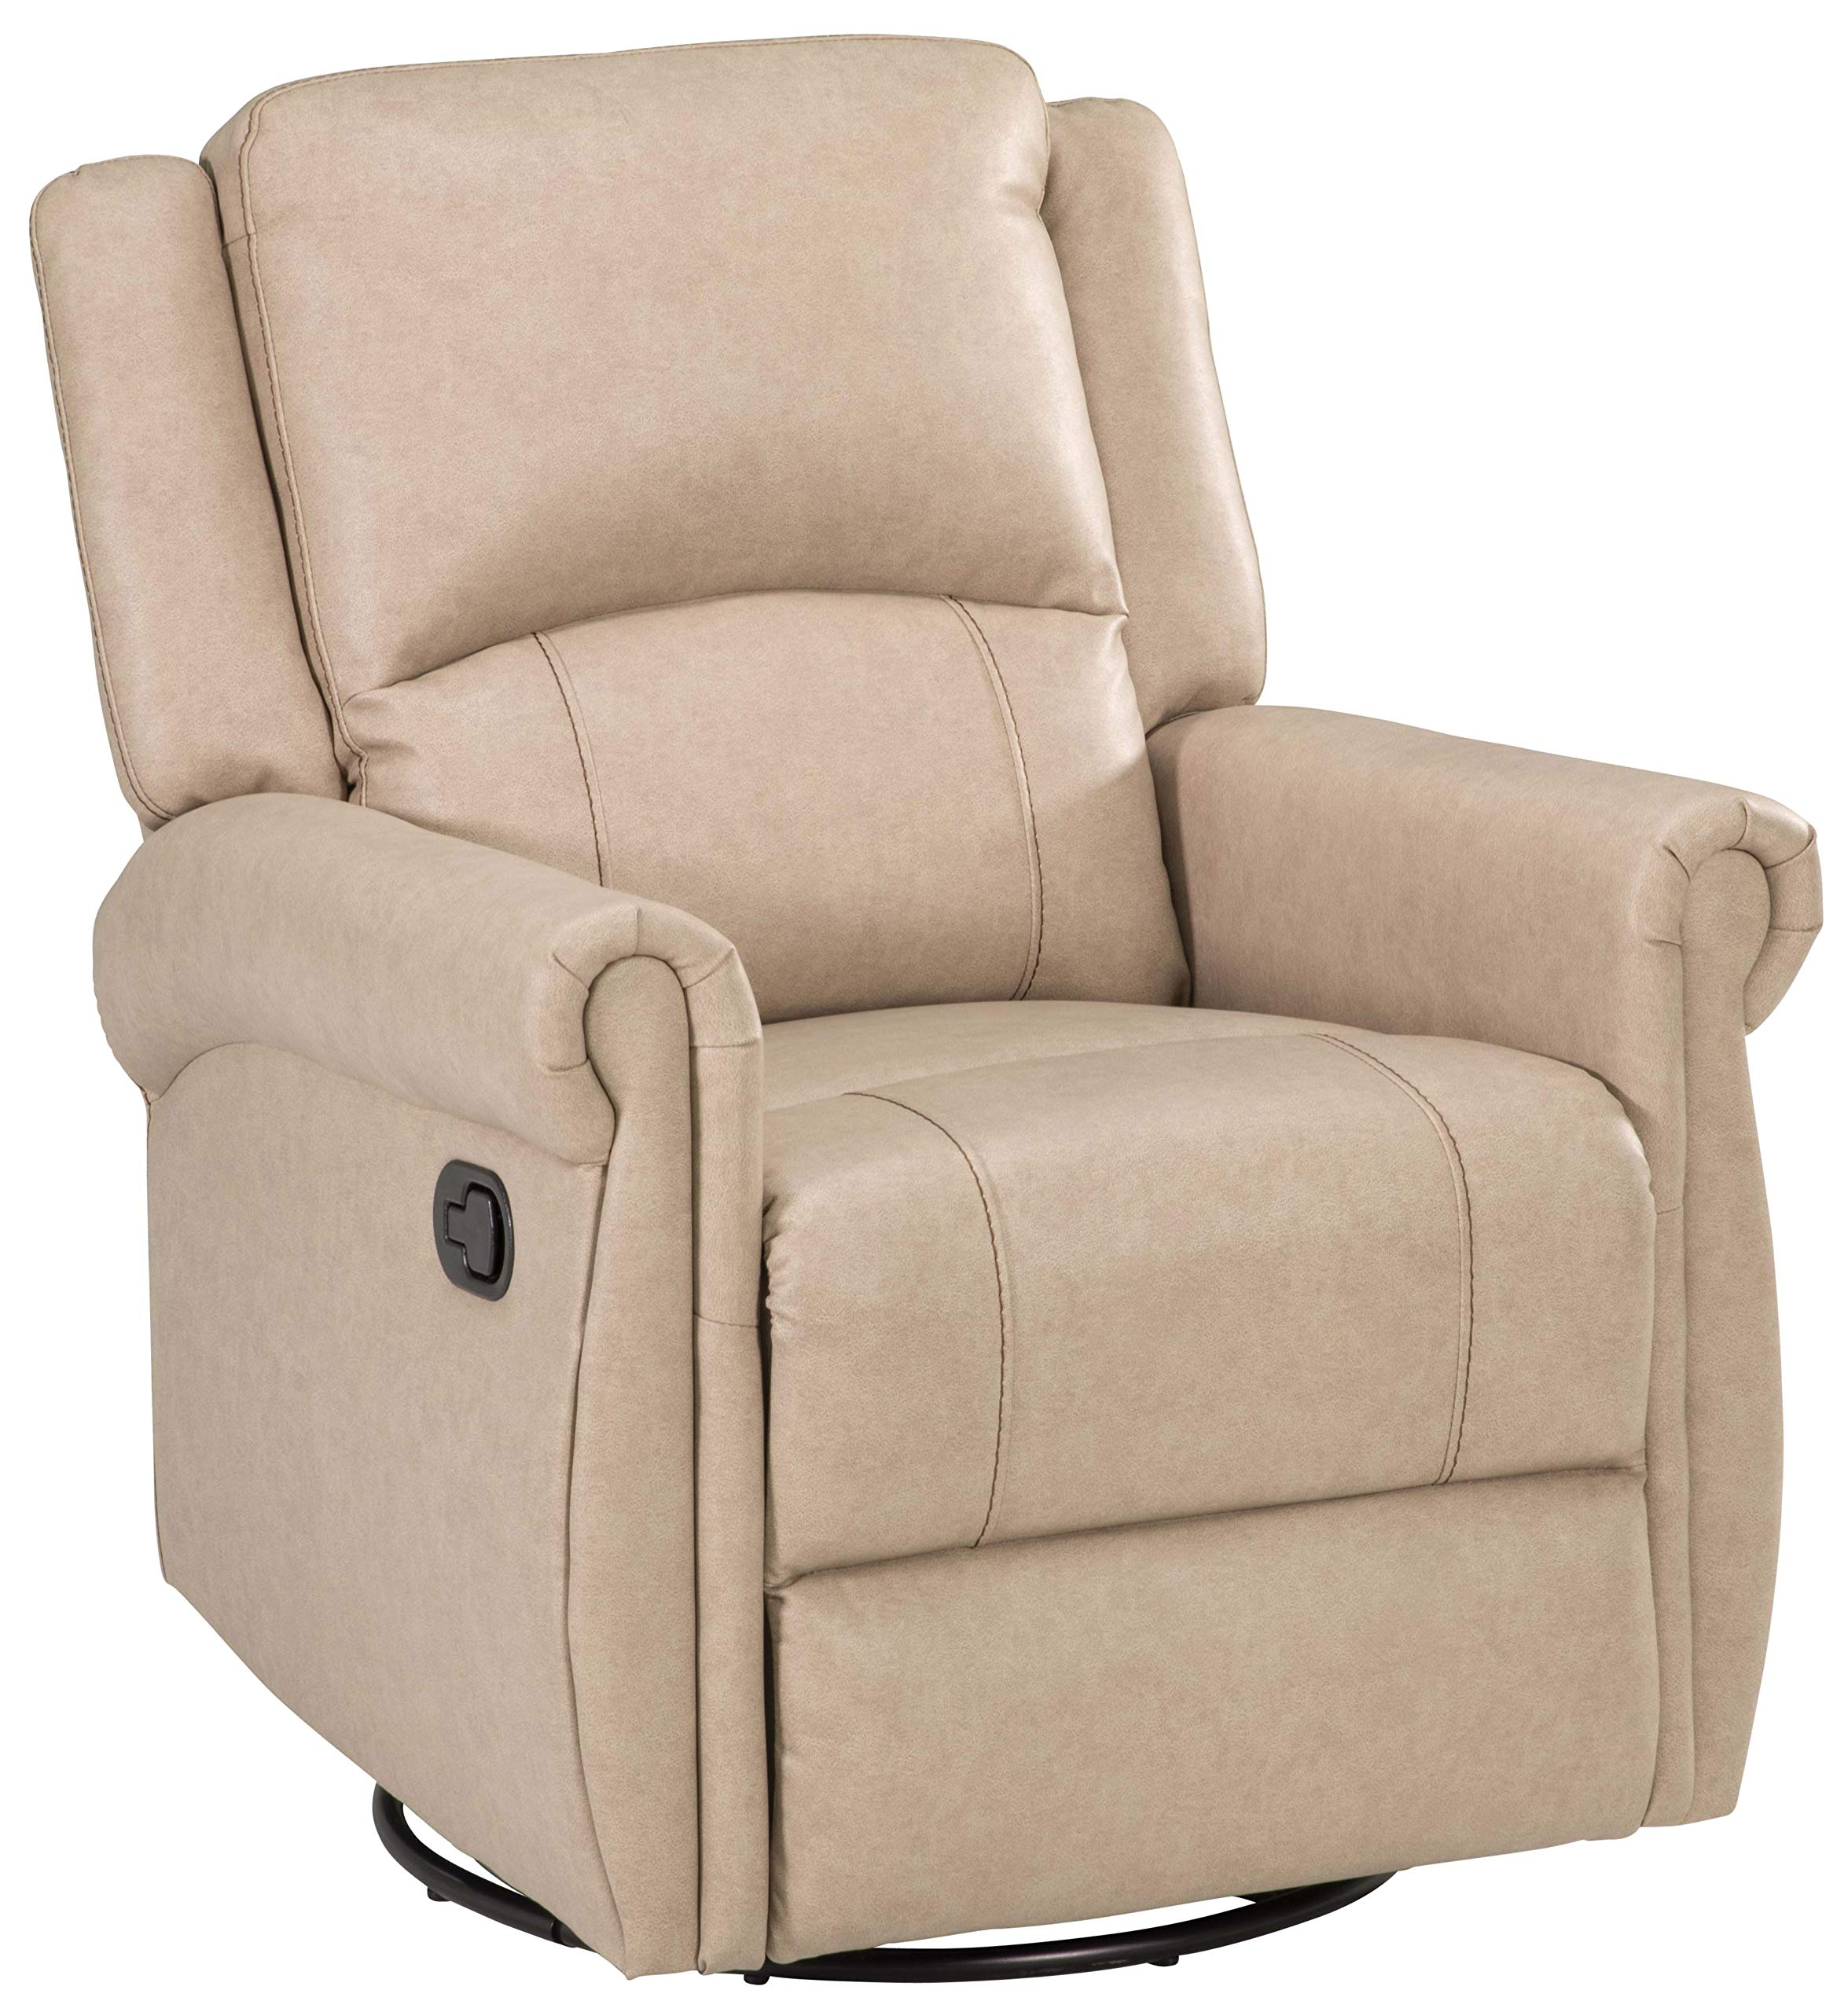 Thomas Payne 759295 Heritage Series Grantland Doeskin 2-Arm Swivel Glider Recliner by Thomas Payne